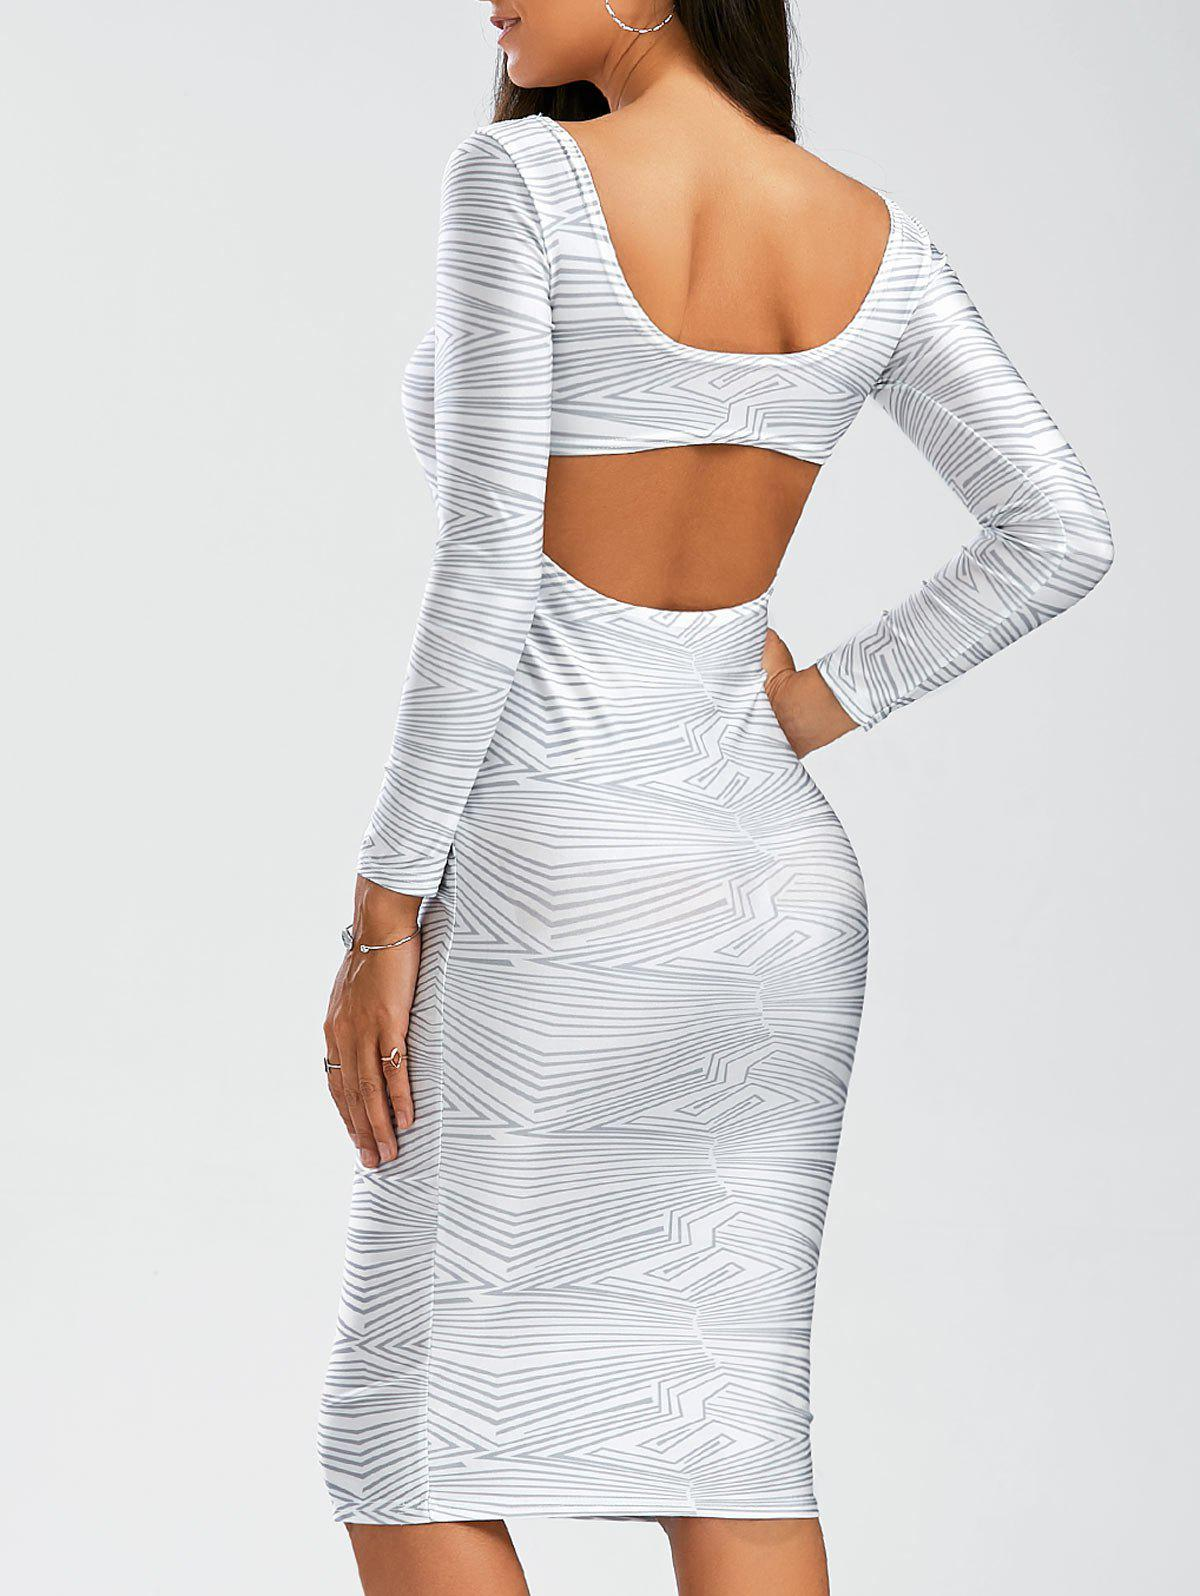 Sexy Scoop Neck Long Sleeve Backless Bodycon Women's Dress - WHITE L